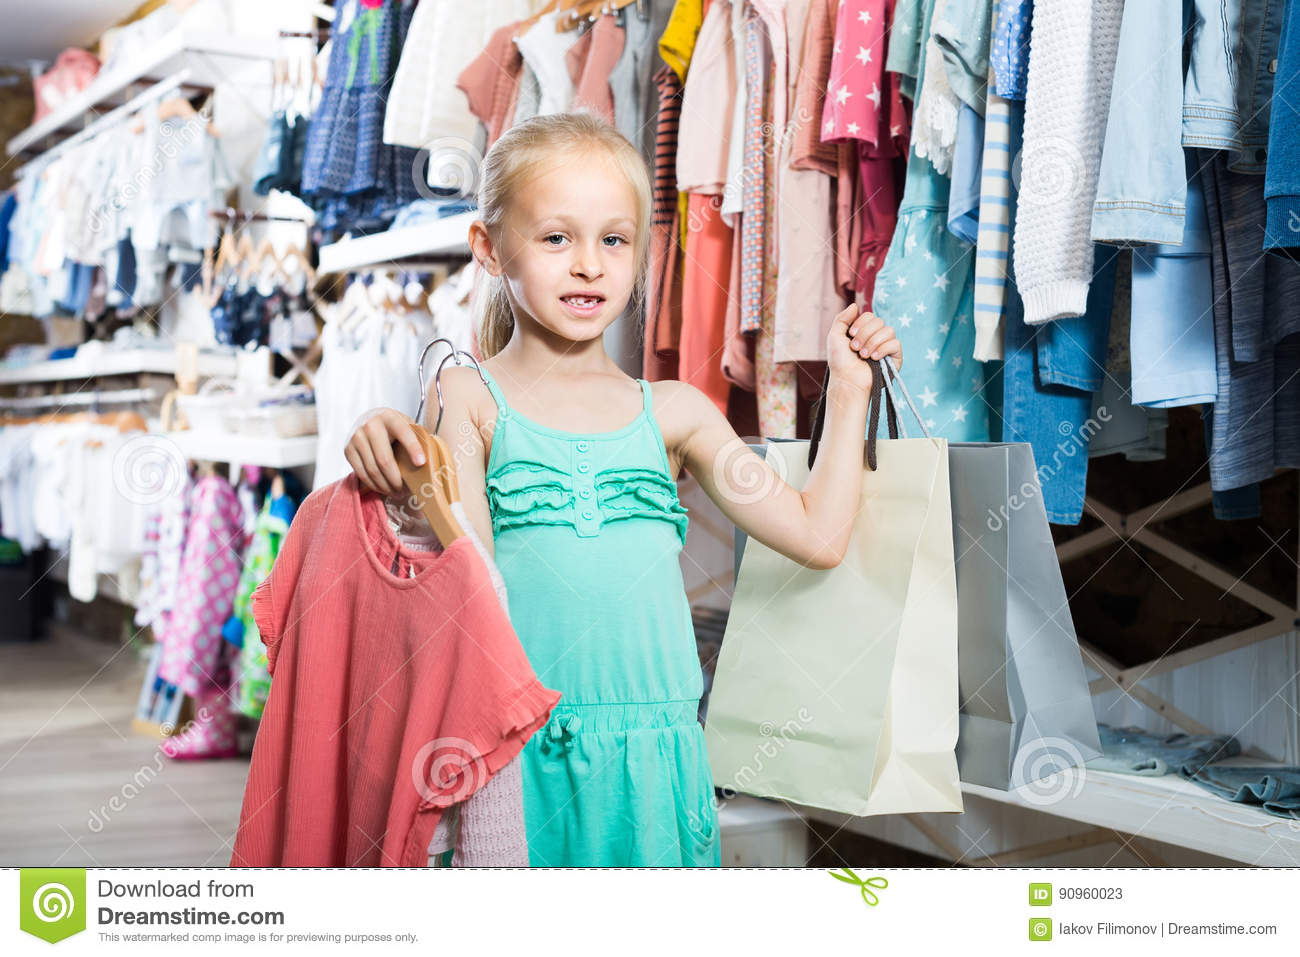 0ad8ae76b Portrait of cheerful american girl standing in kids clothes store with  shopping bags